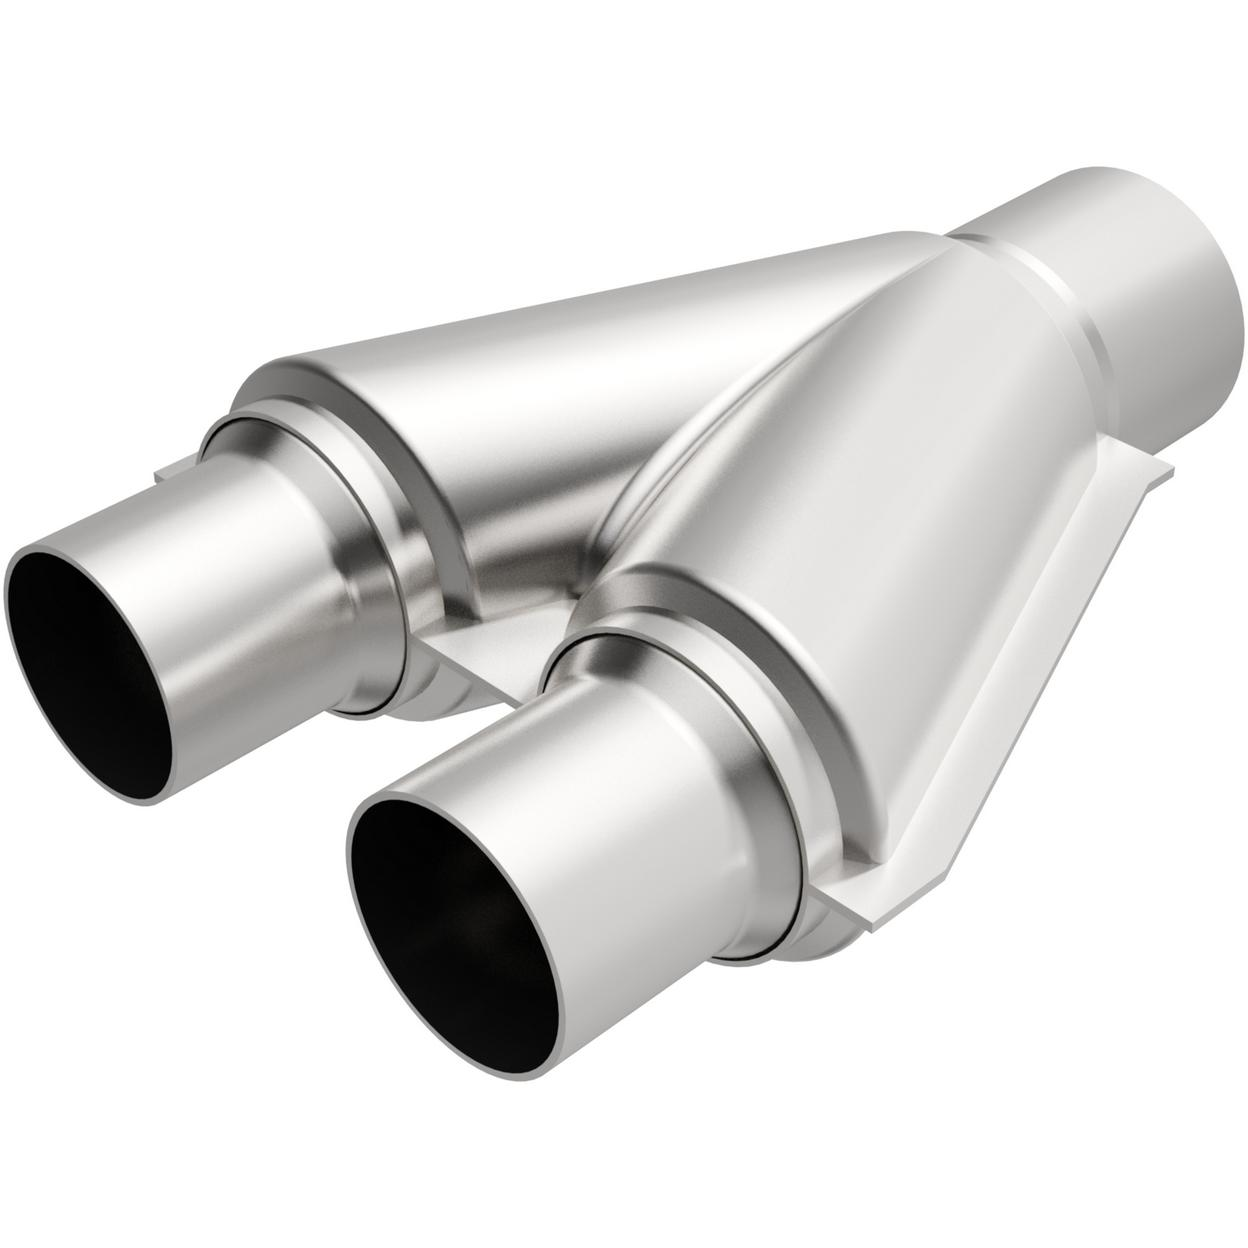 Exhaust Y-Pipe - 2.50/2.00